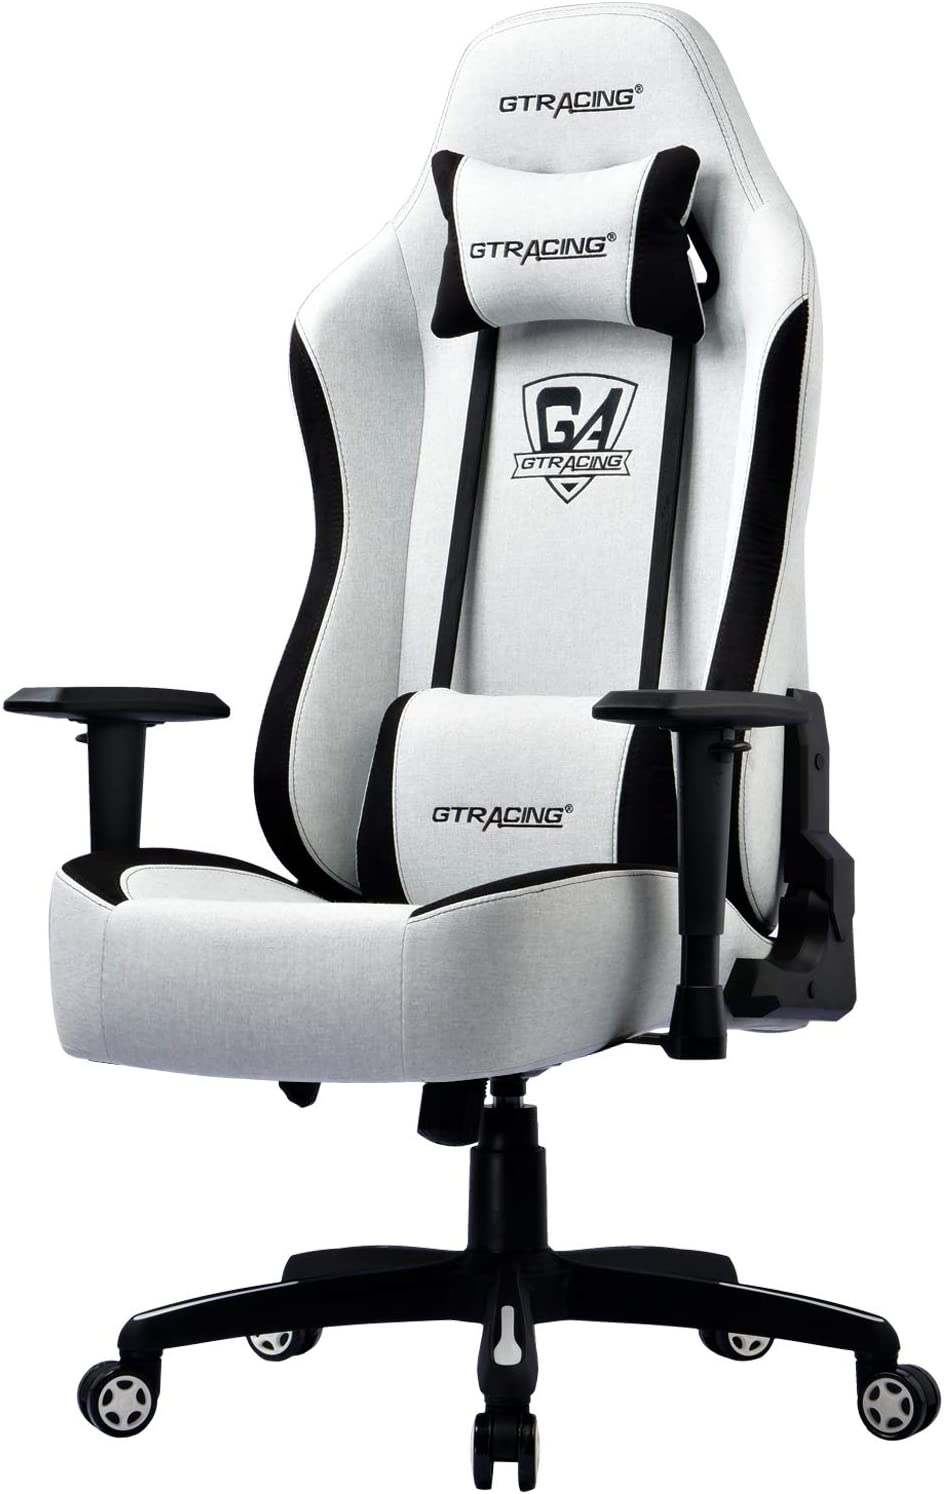 Best Budget Gaming Chairs under $100